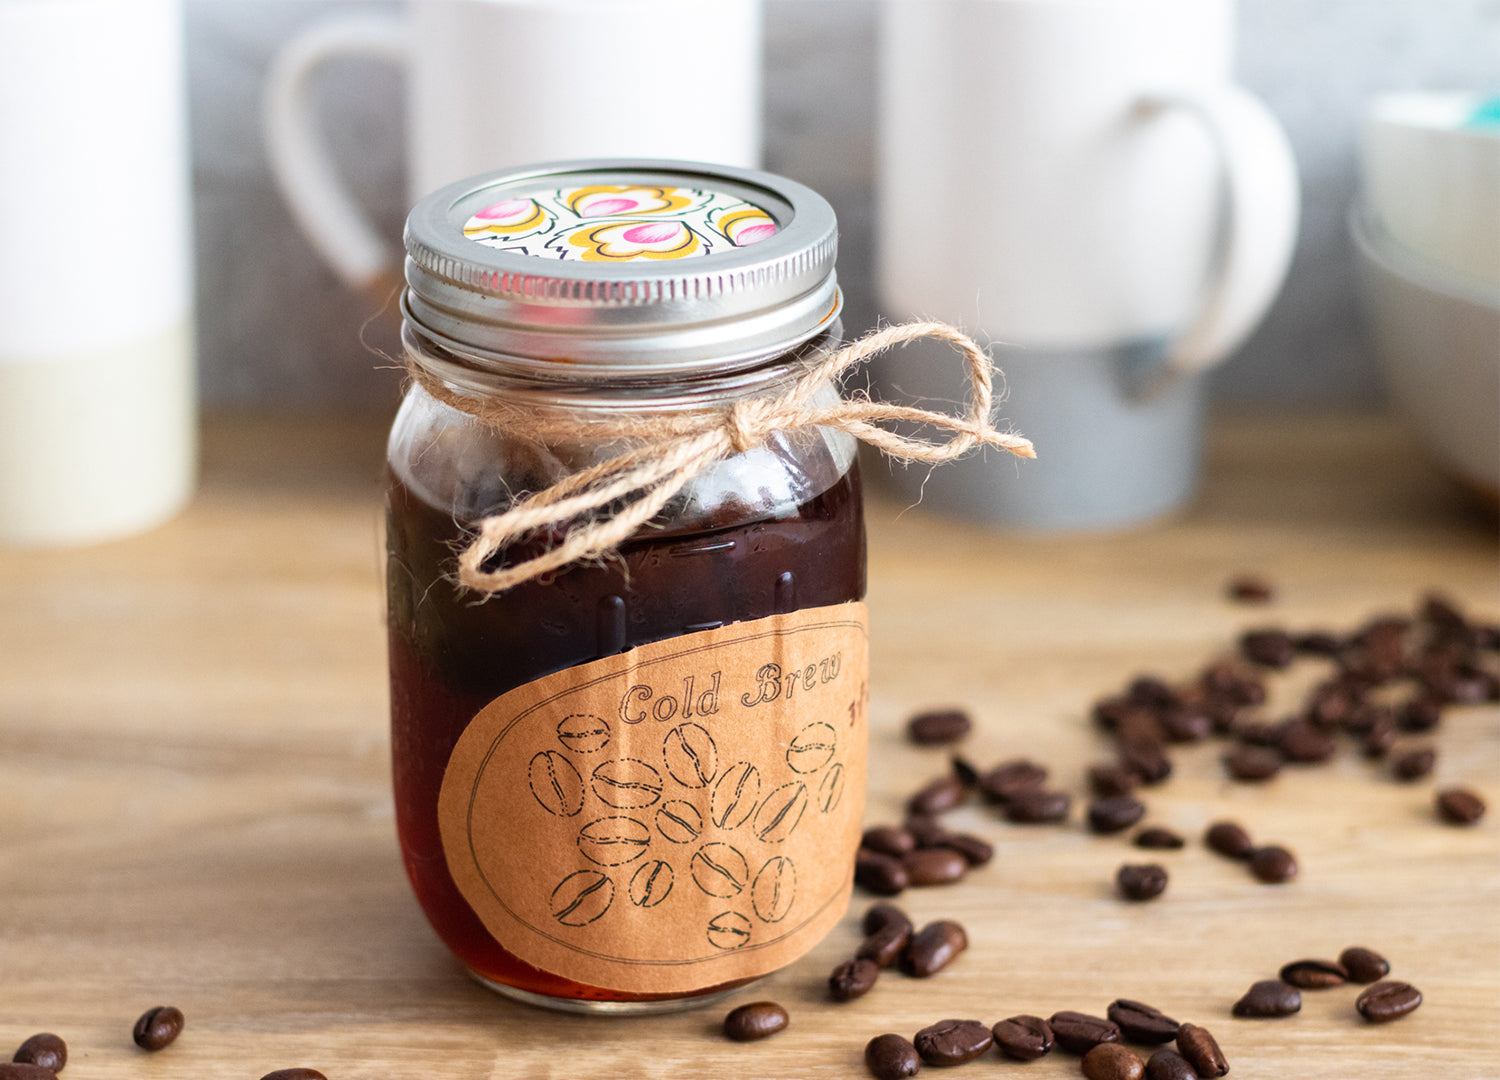 Fully extracted cold brew coffee in a mason jar with a Cricut made cold brew label, decorative twine, and a pink and yellow decorative sticker